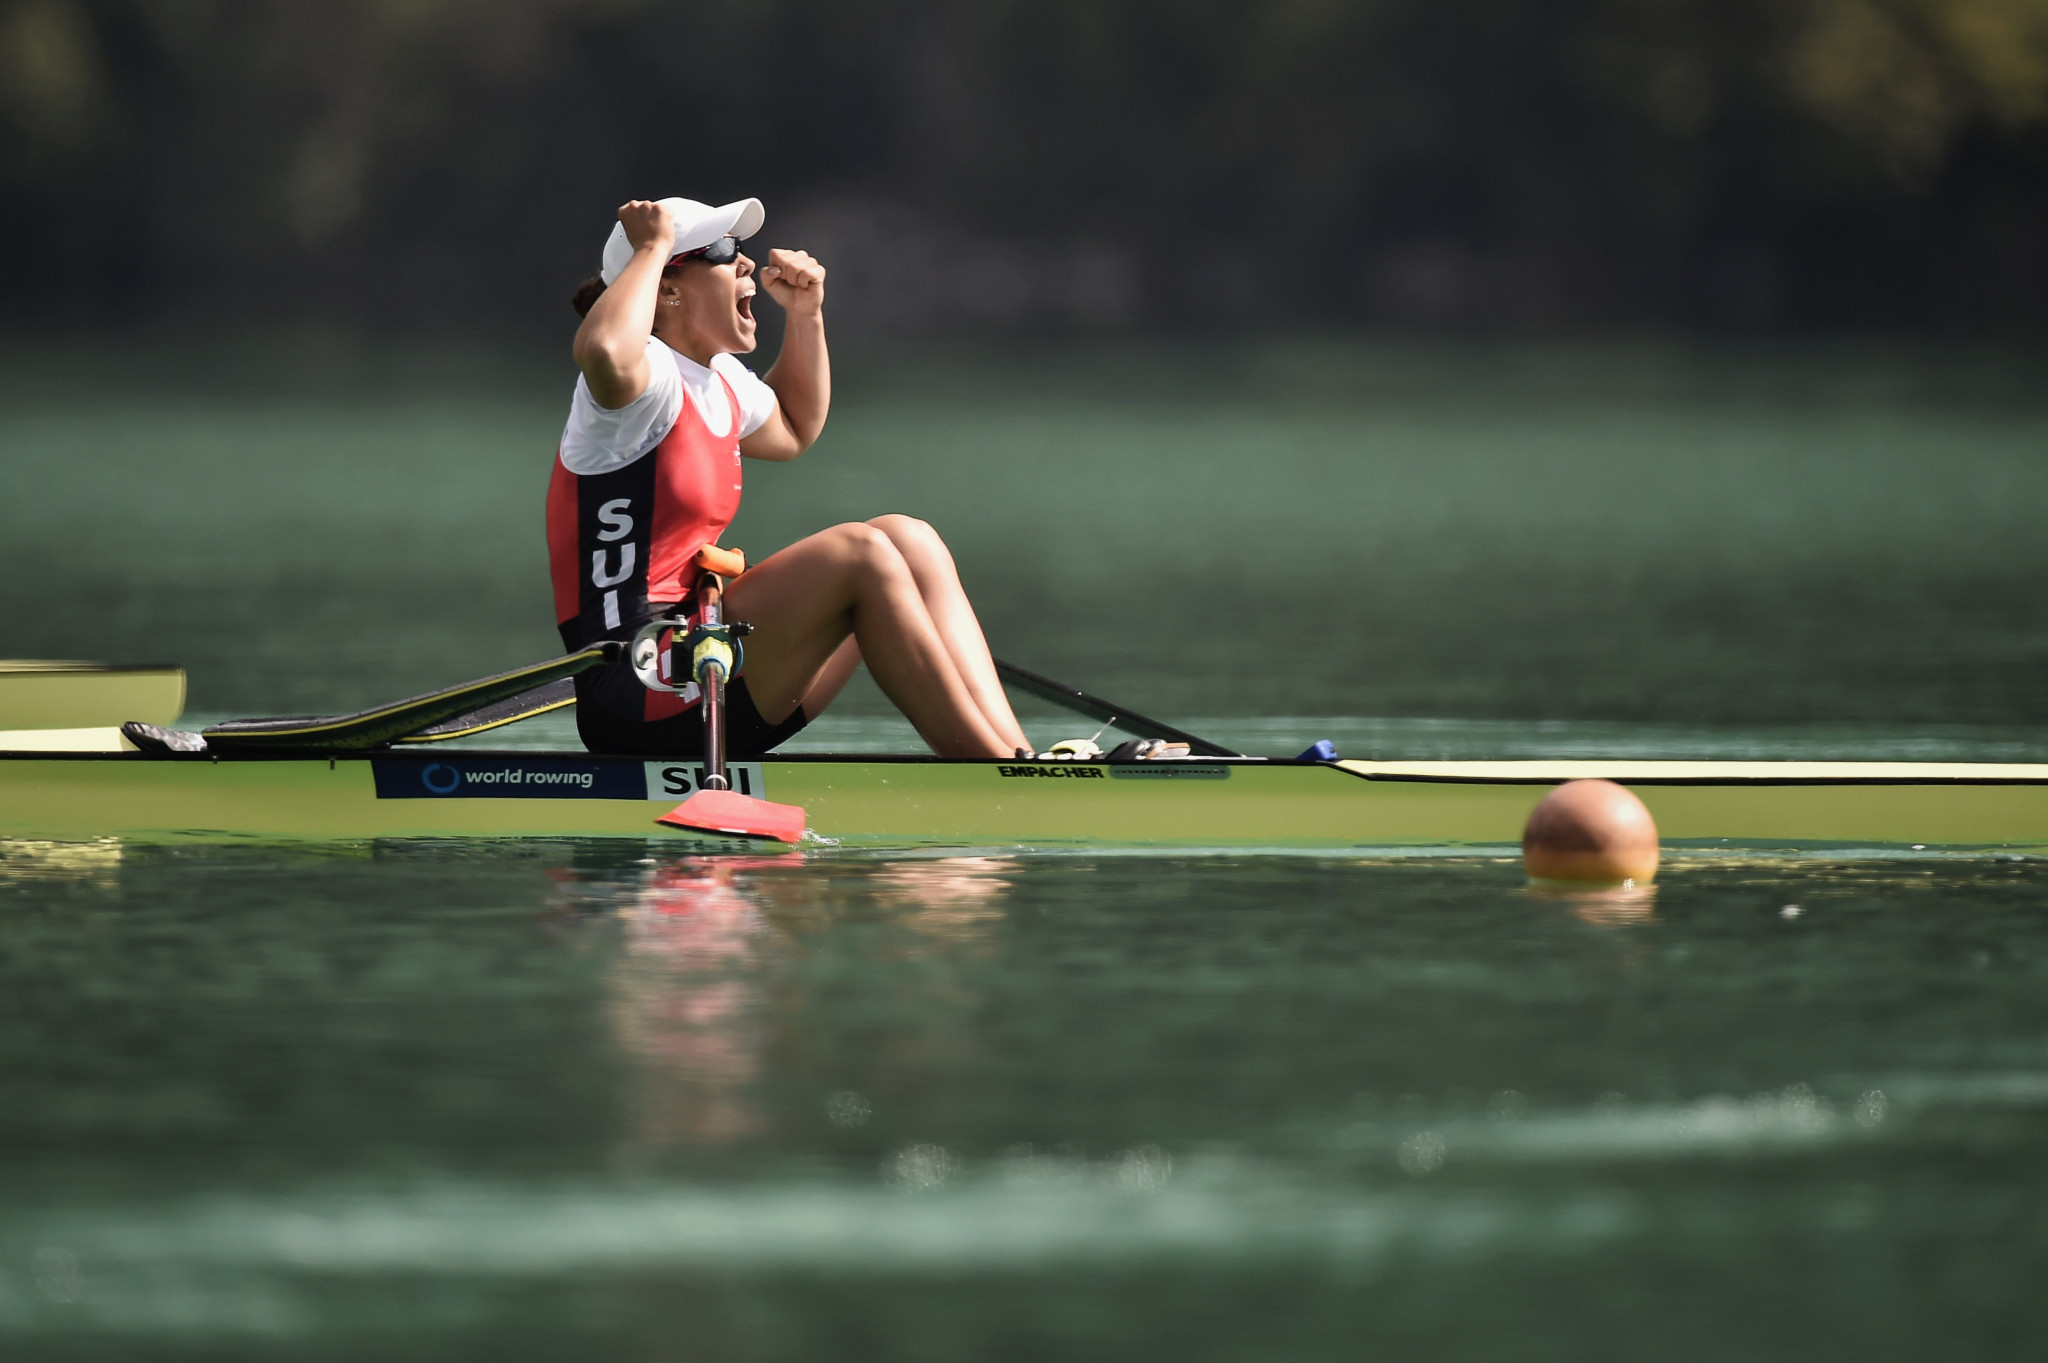 Gmelin and Lobnig to lock horns again at World Rowing Cup in Lucerne